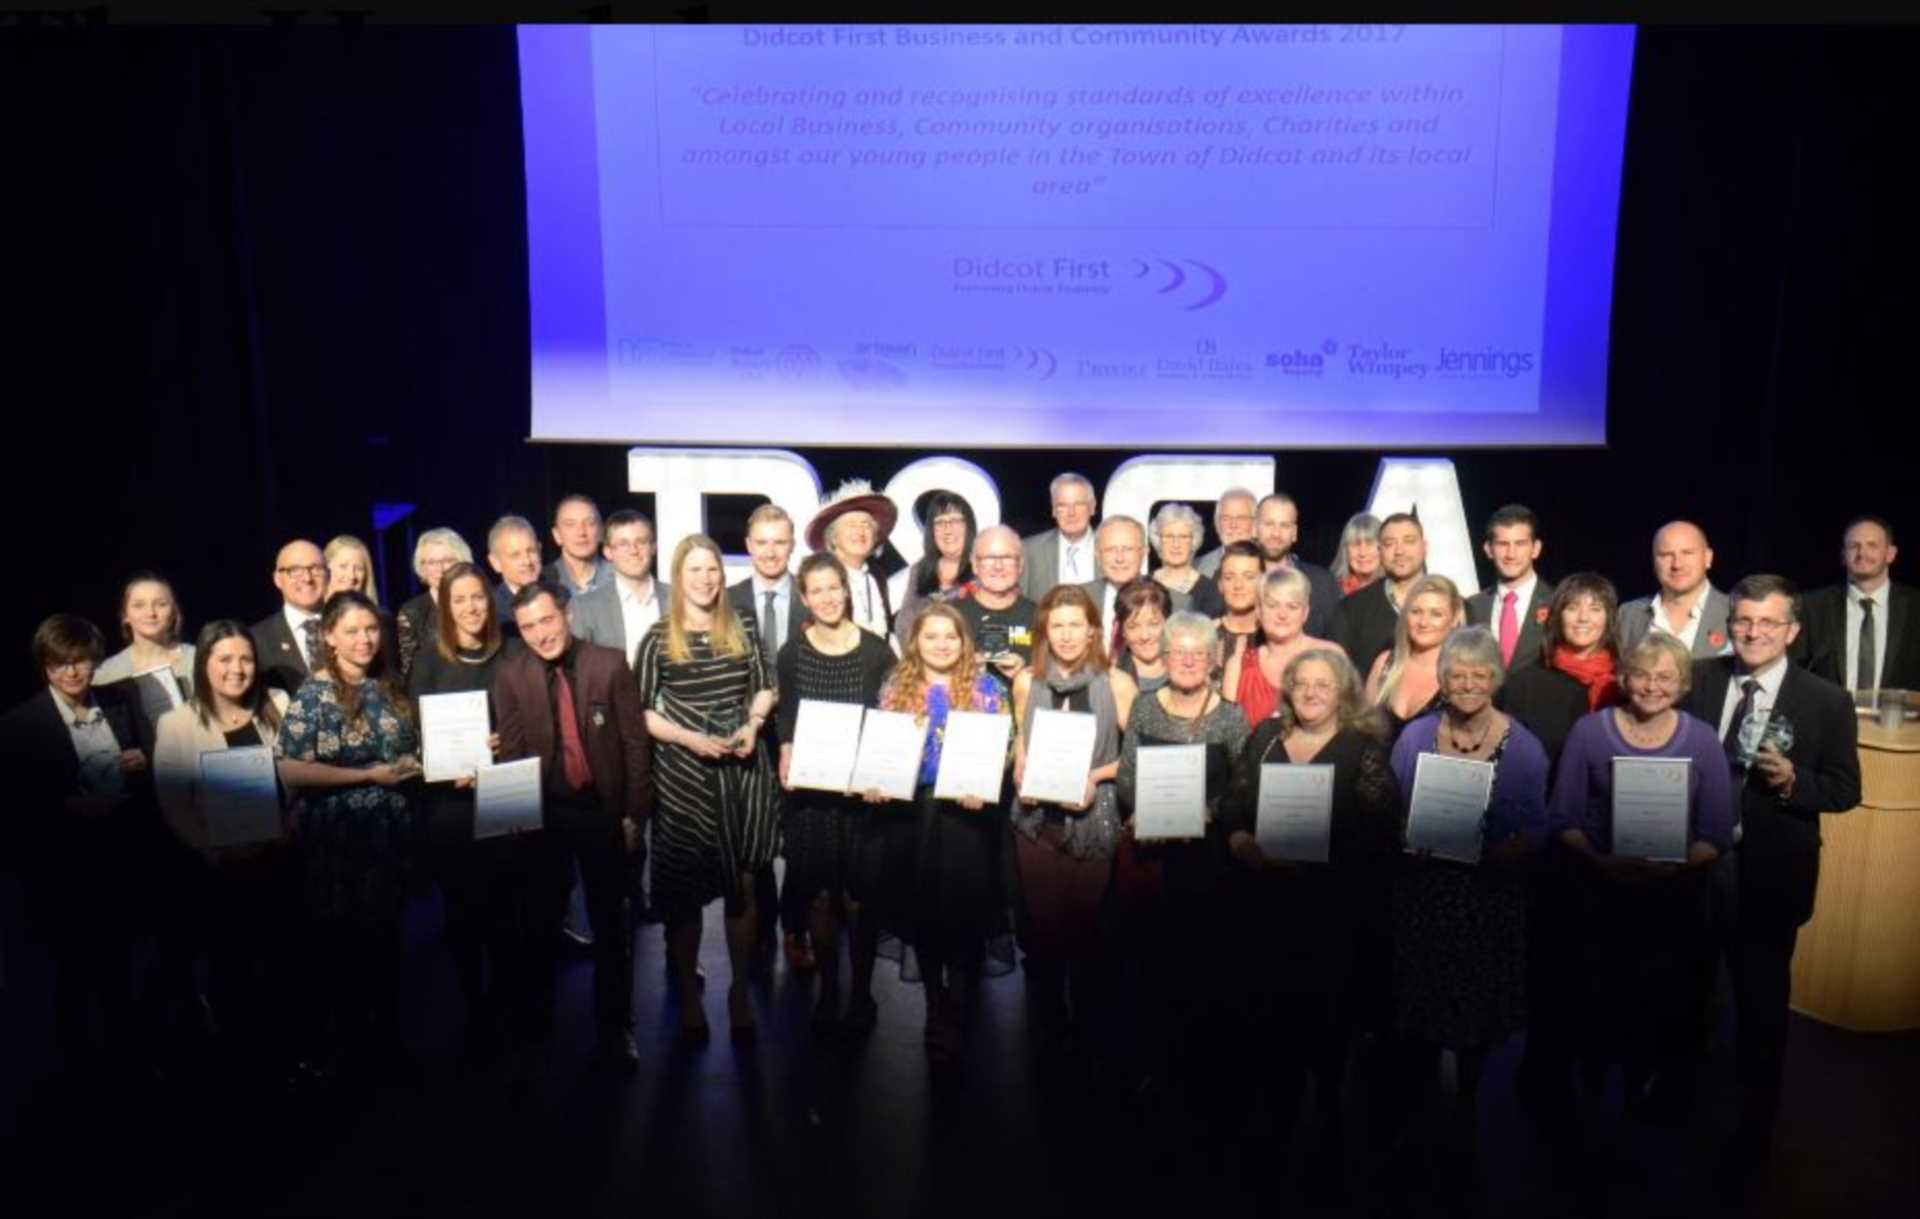 Didcot honours best businesses and community organisations at glitzy ceremony